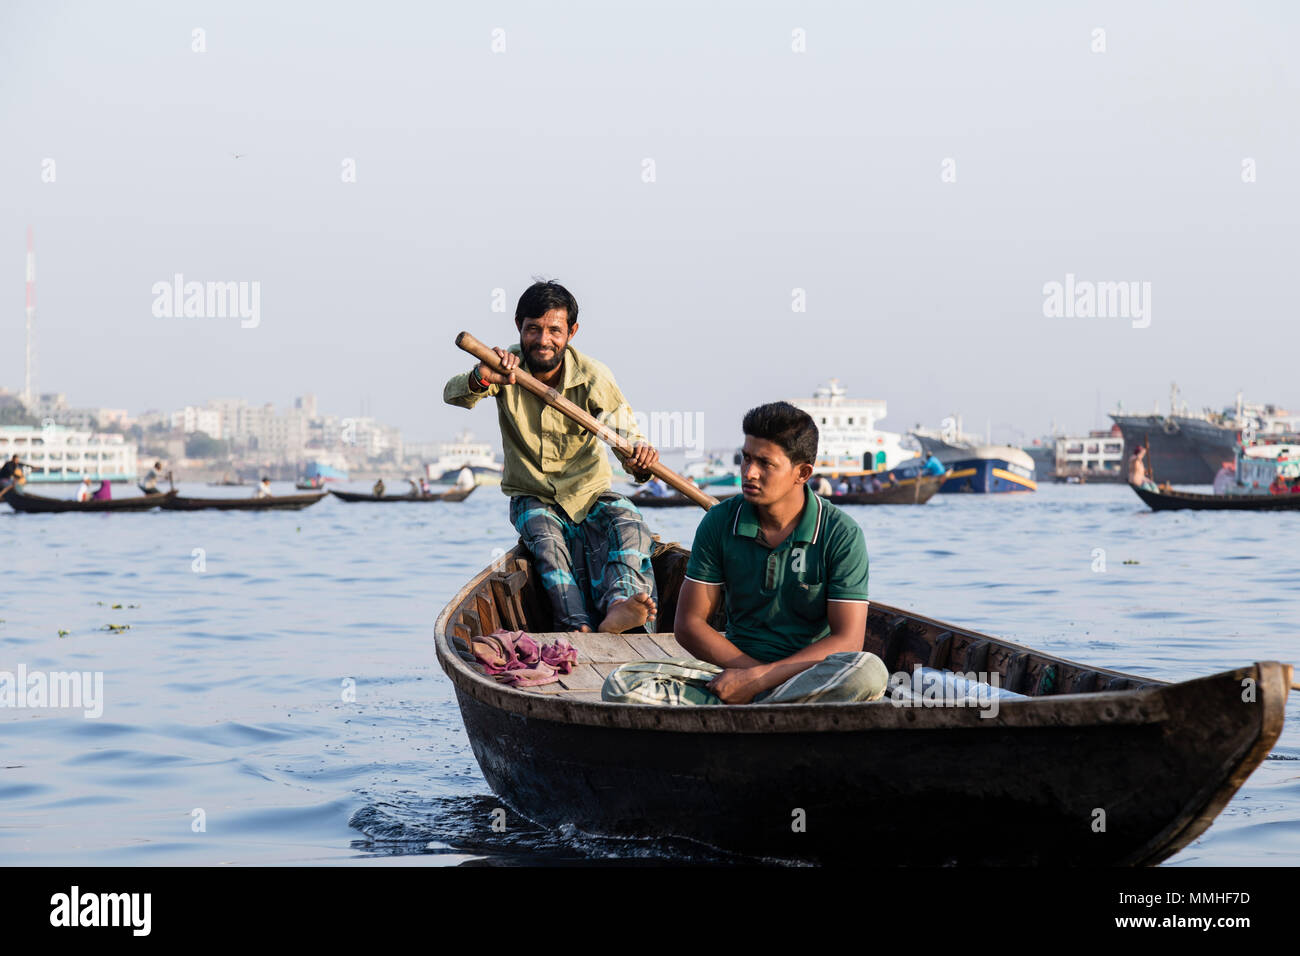 Dhaka, Bangladesh, February 24 2017: Wooden taxi boat with passengers and a cargo ship in background on the Buriganga River in Dhaka Bangladesh - Stock Image